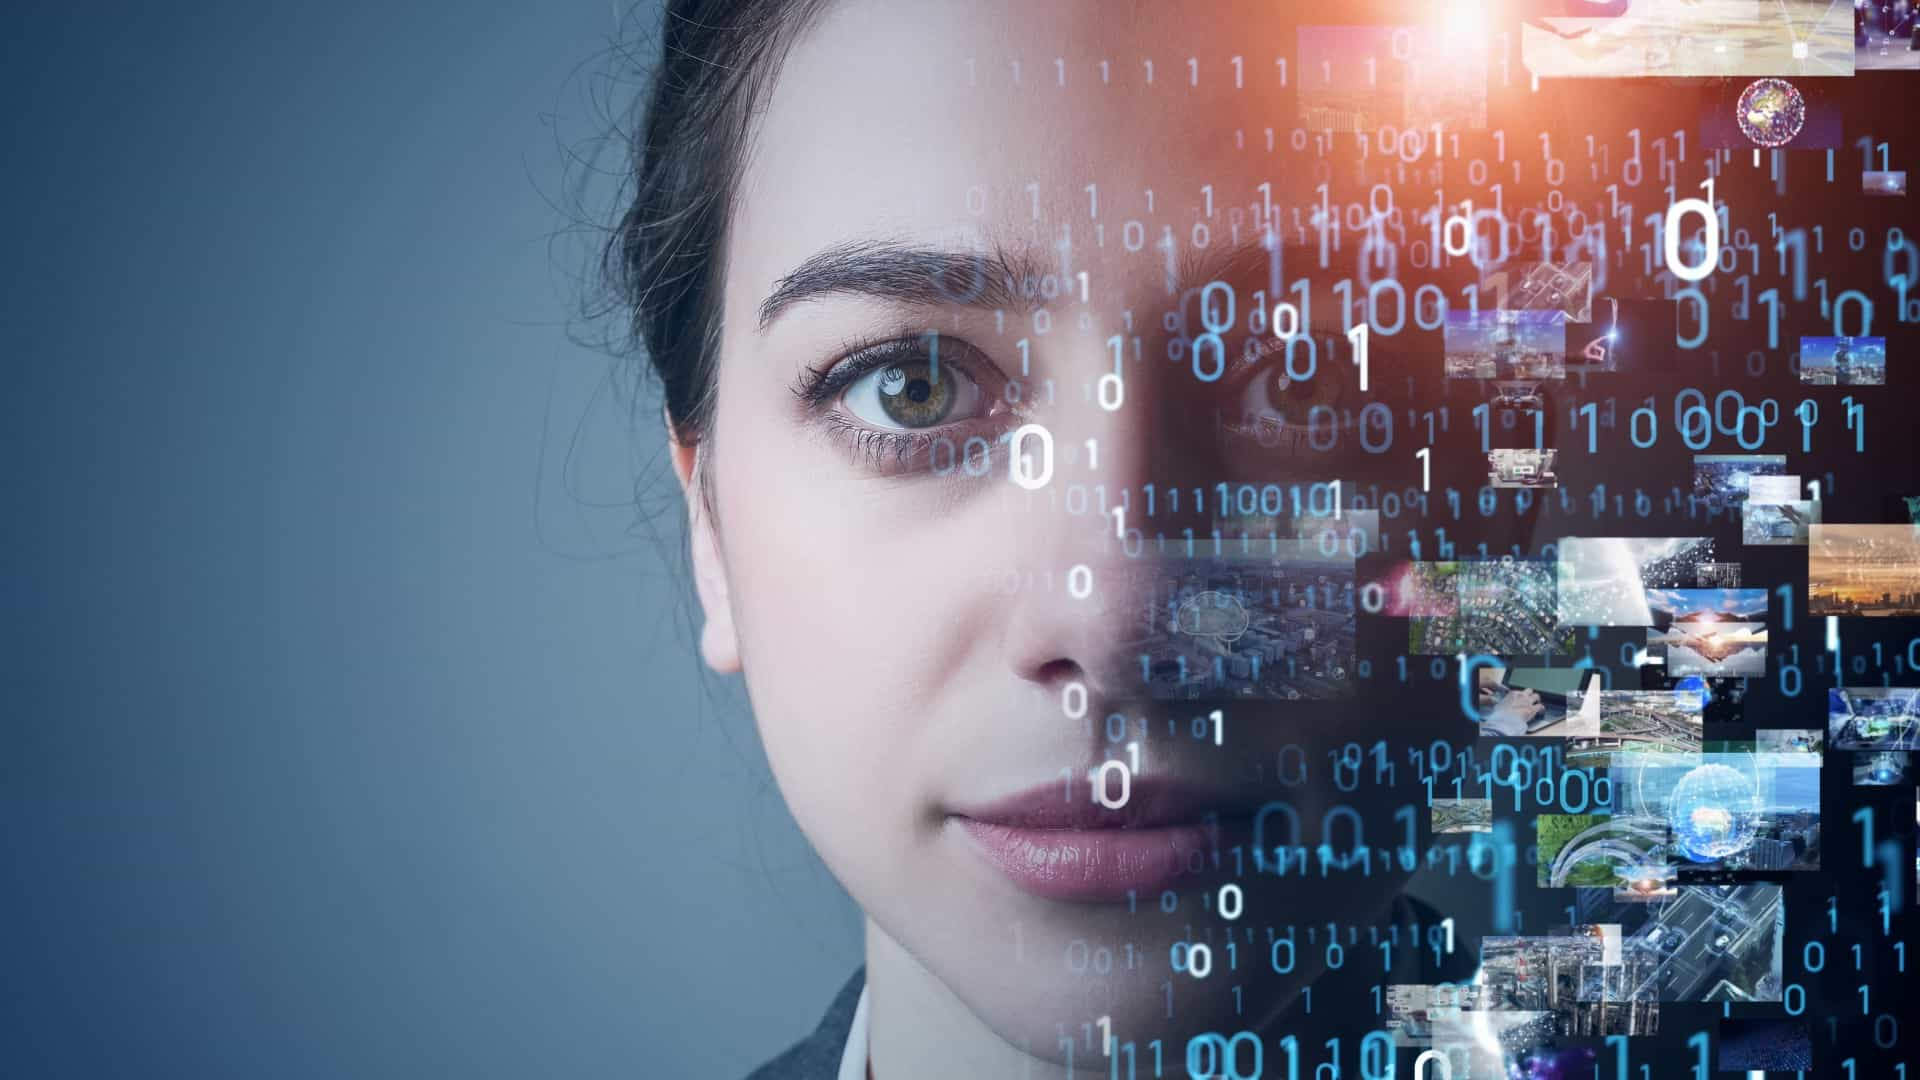 a woman stares ahead with a serious expression on her face while half of her face is covered by computer coding, indicative of artificial intelligence and machine learning technology.